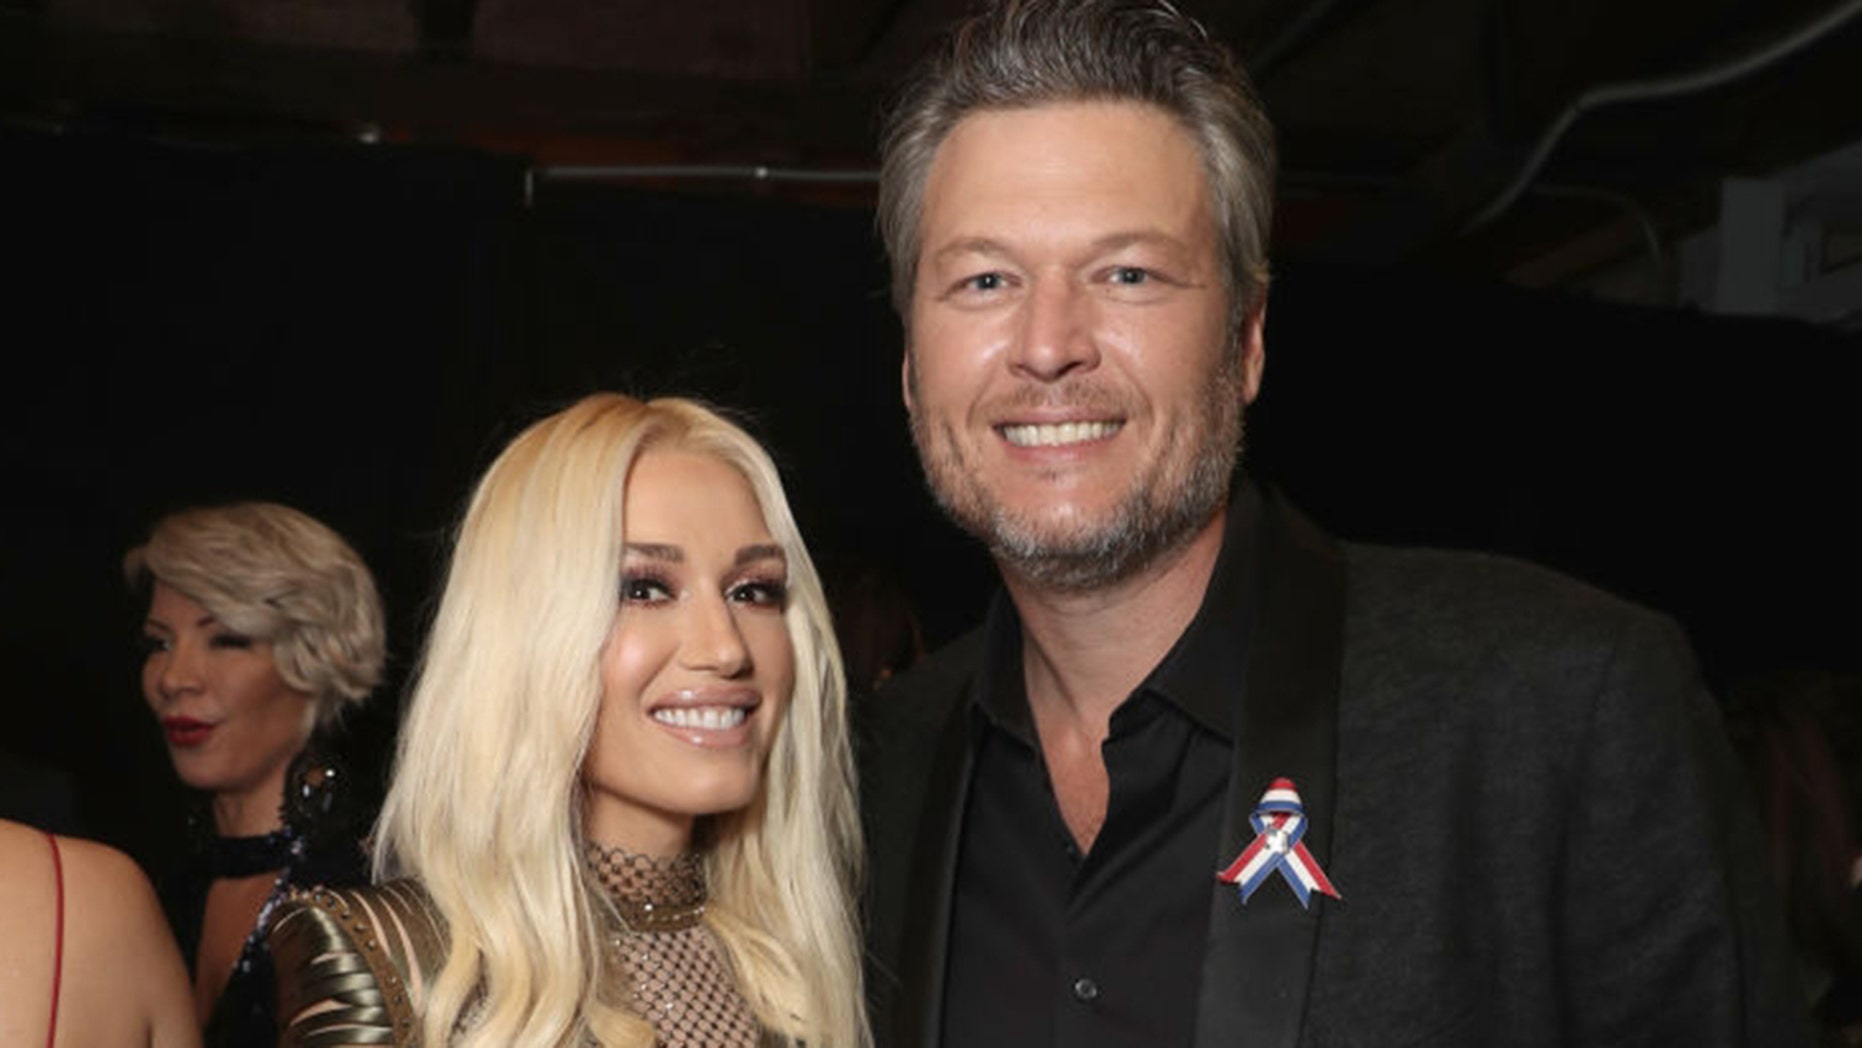 Gwen Stefani and Blake Shelton pose for a photo.